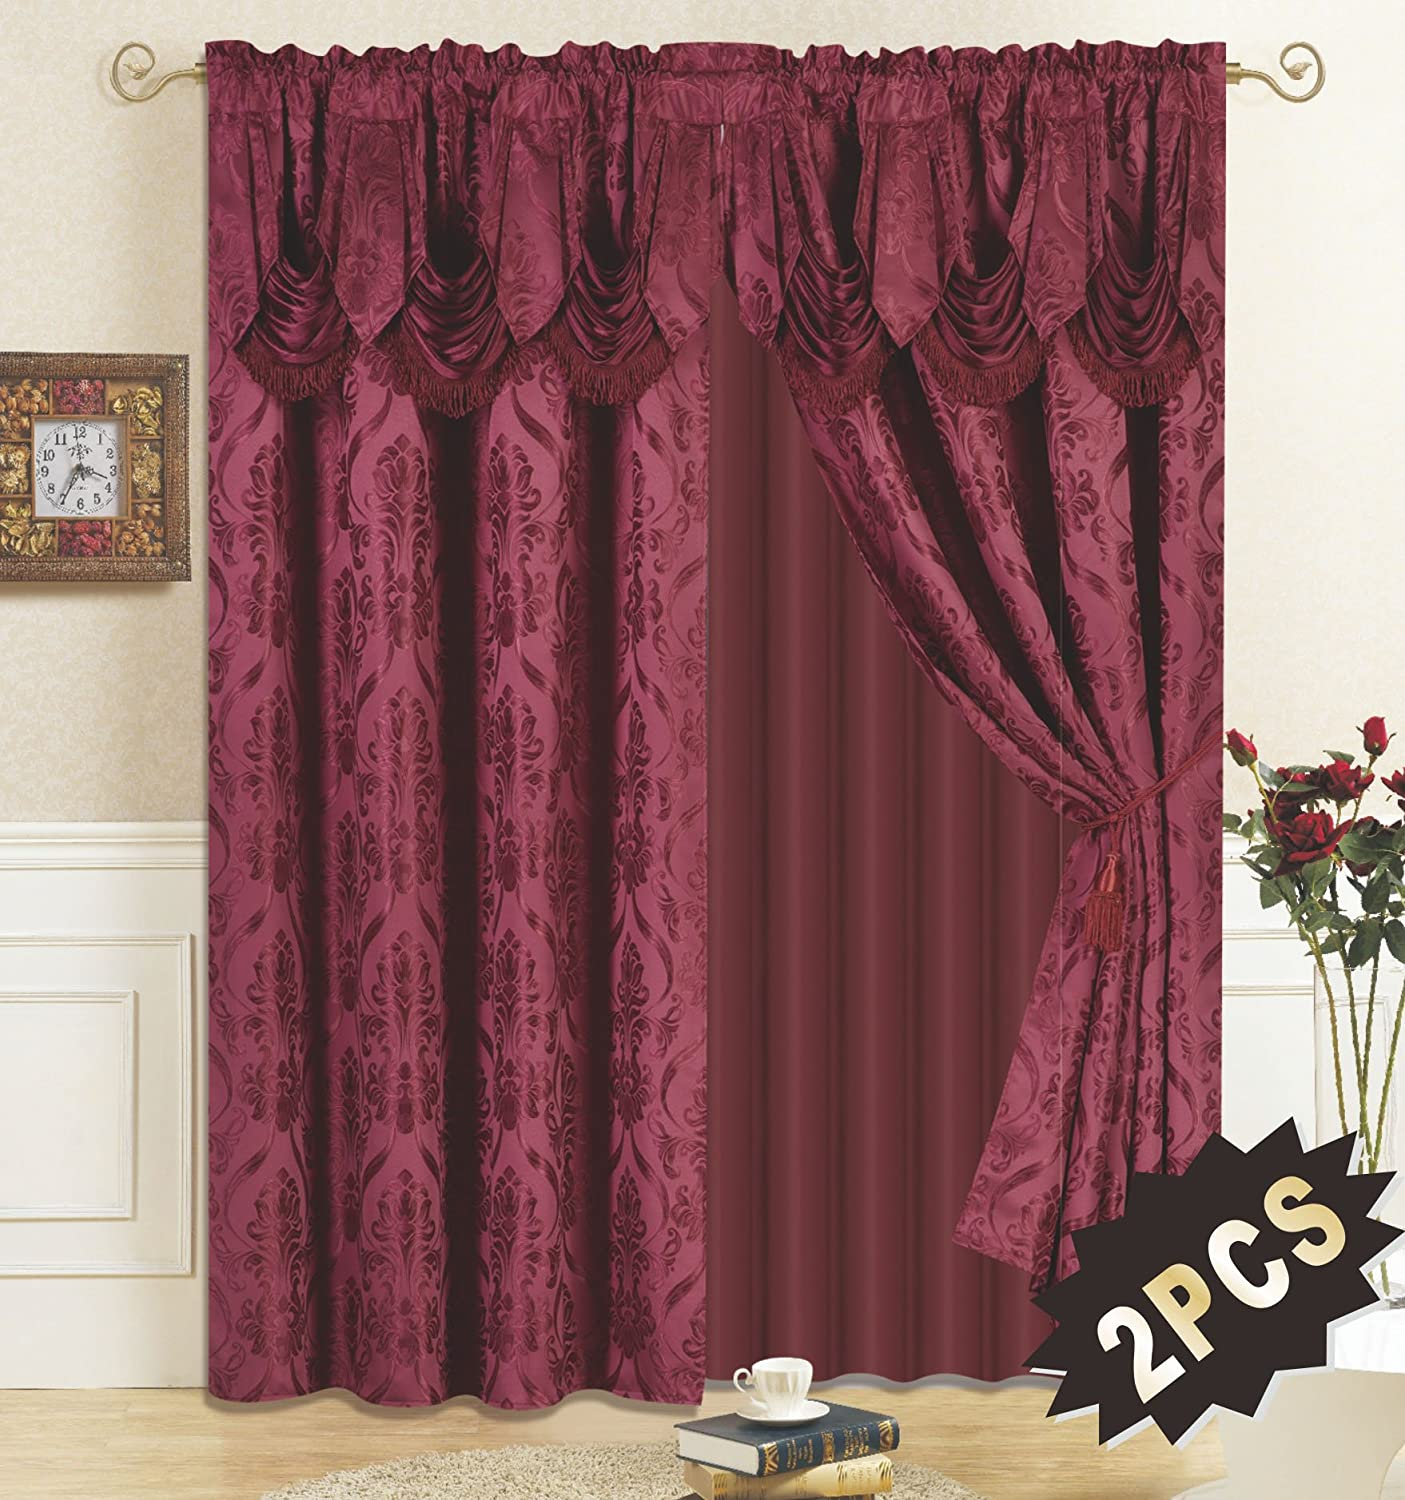 4 Piece Drape Set with Attached Valance and Sheer with 2 Tie Backs Included (Burgundy